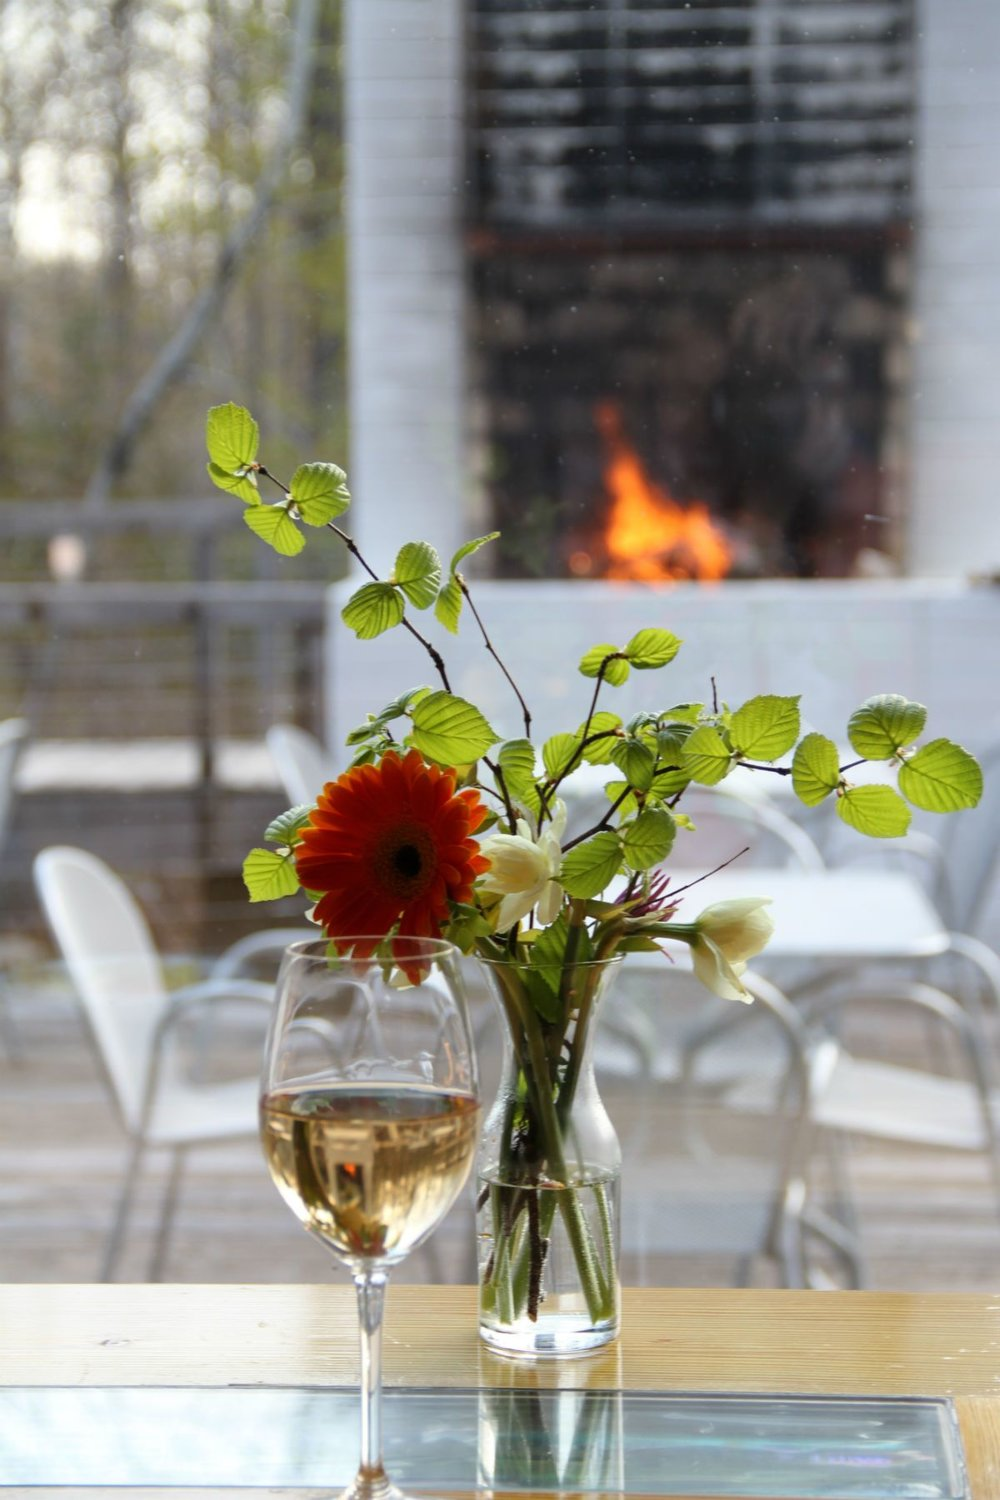 Flower beside a glass of wine in the bar at Wild Rice Retreat